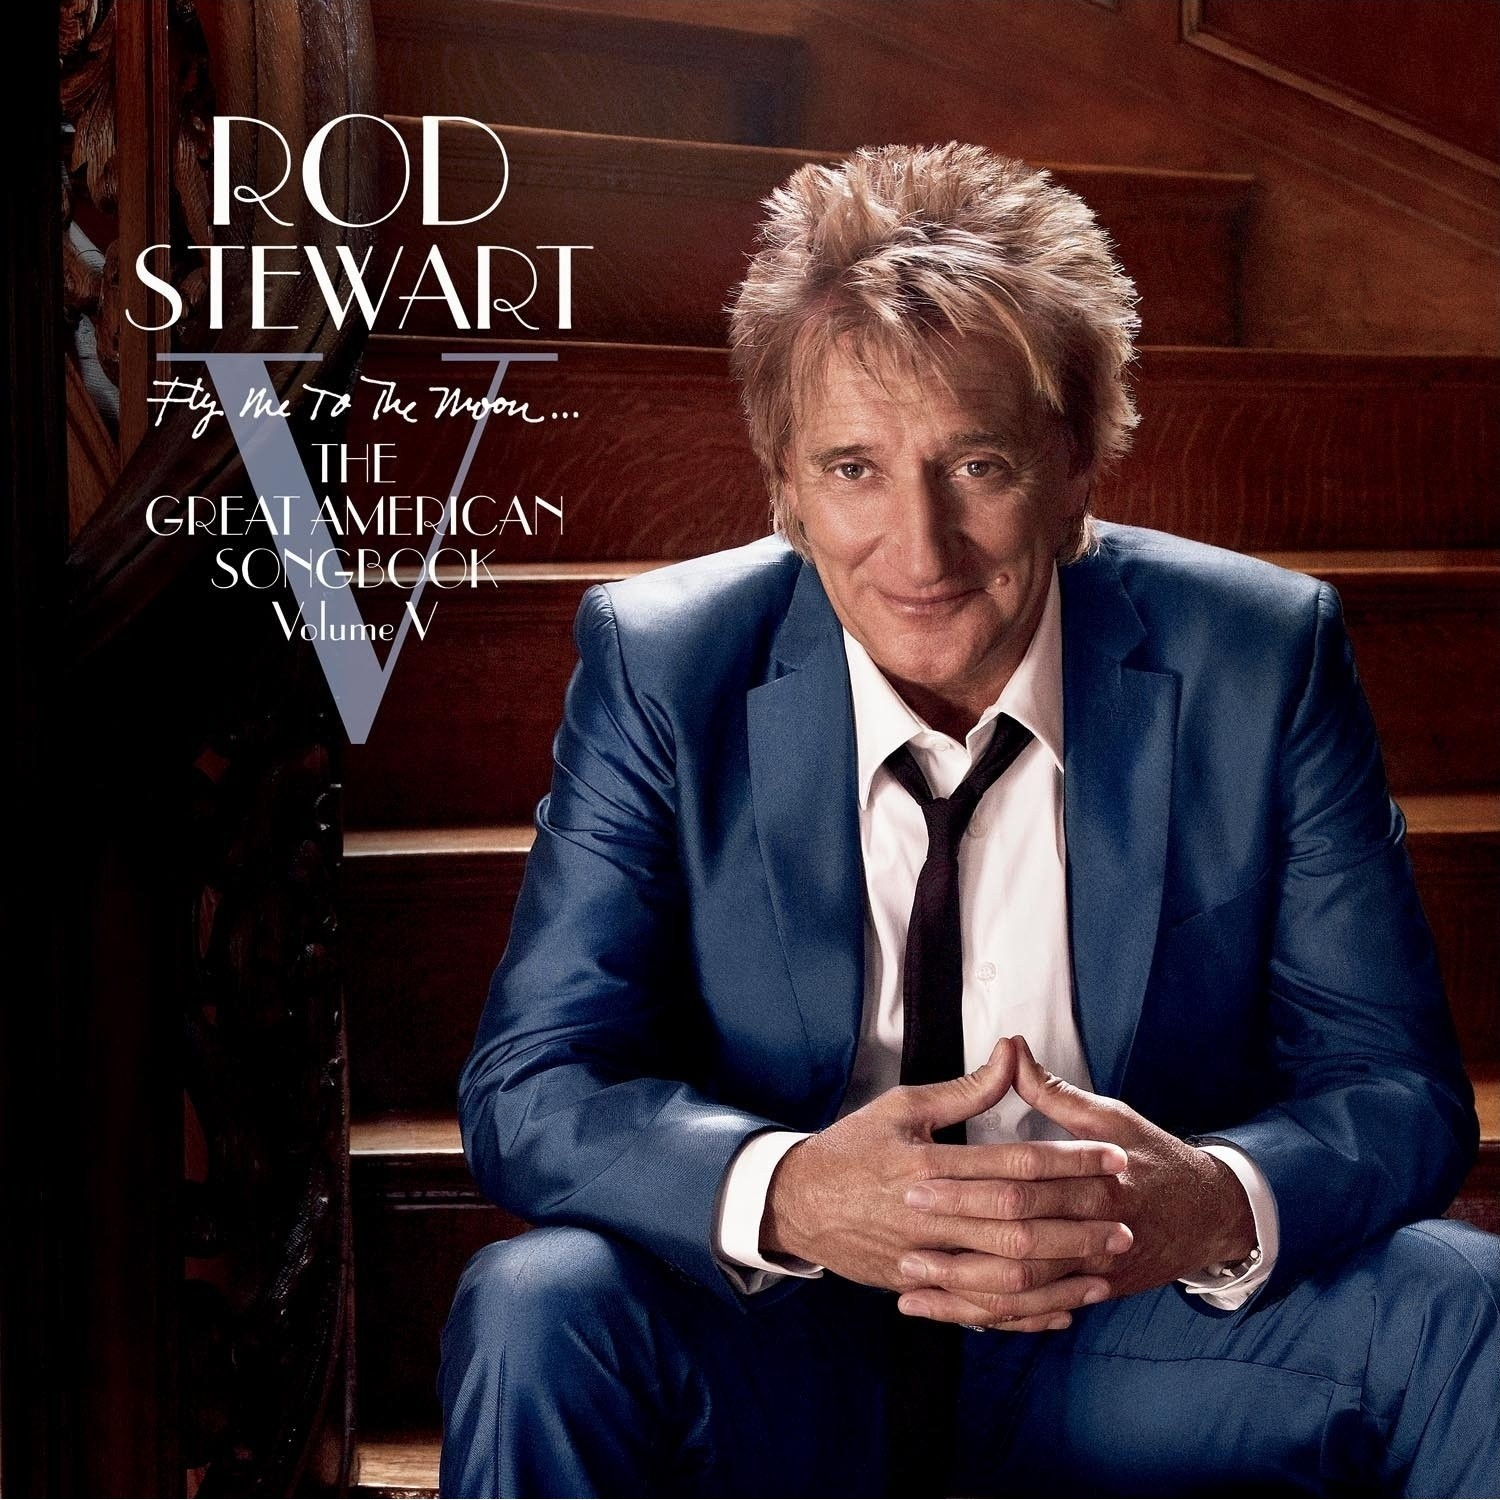 Rod Stewart – Fly Me To The Moon... The Great American Songbook Volume V